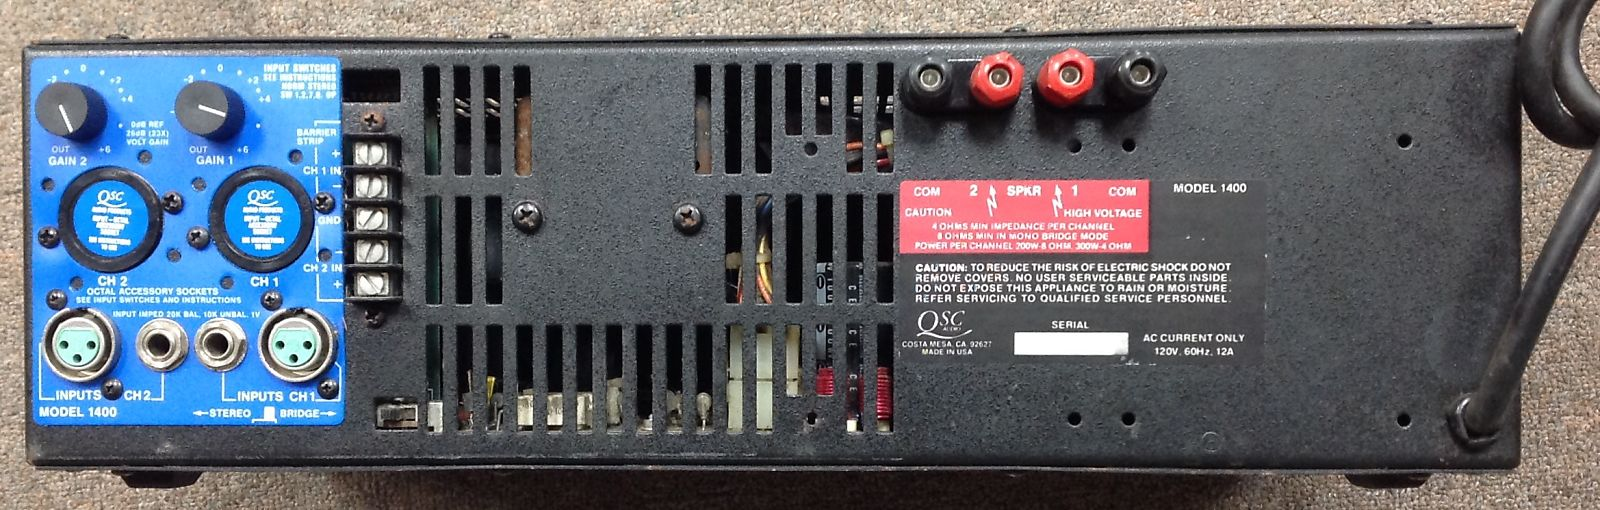 Qsc 1400 Professional Stereo Power Amplifier Amplifiers